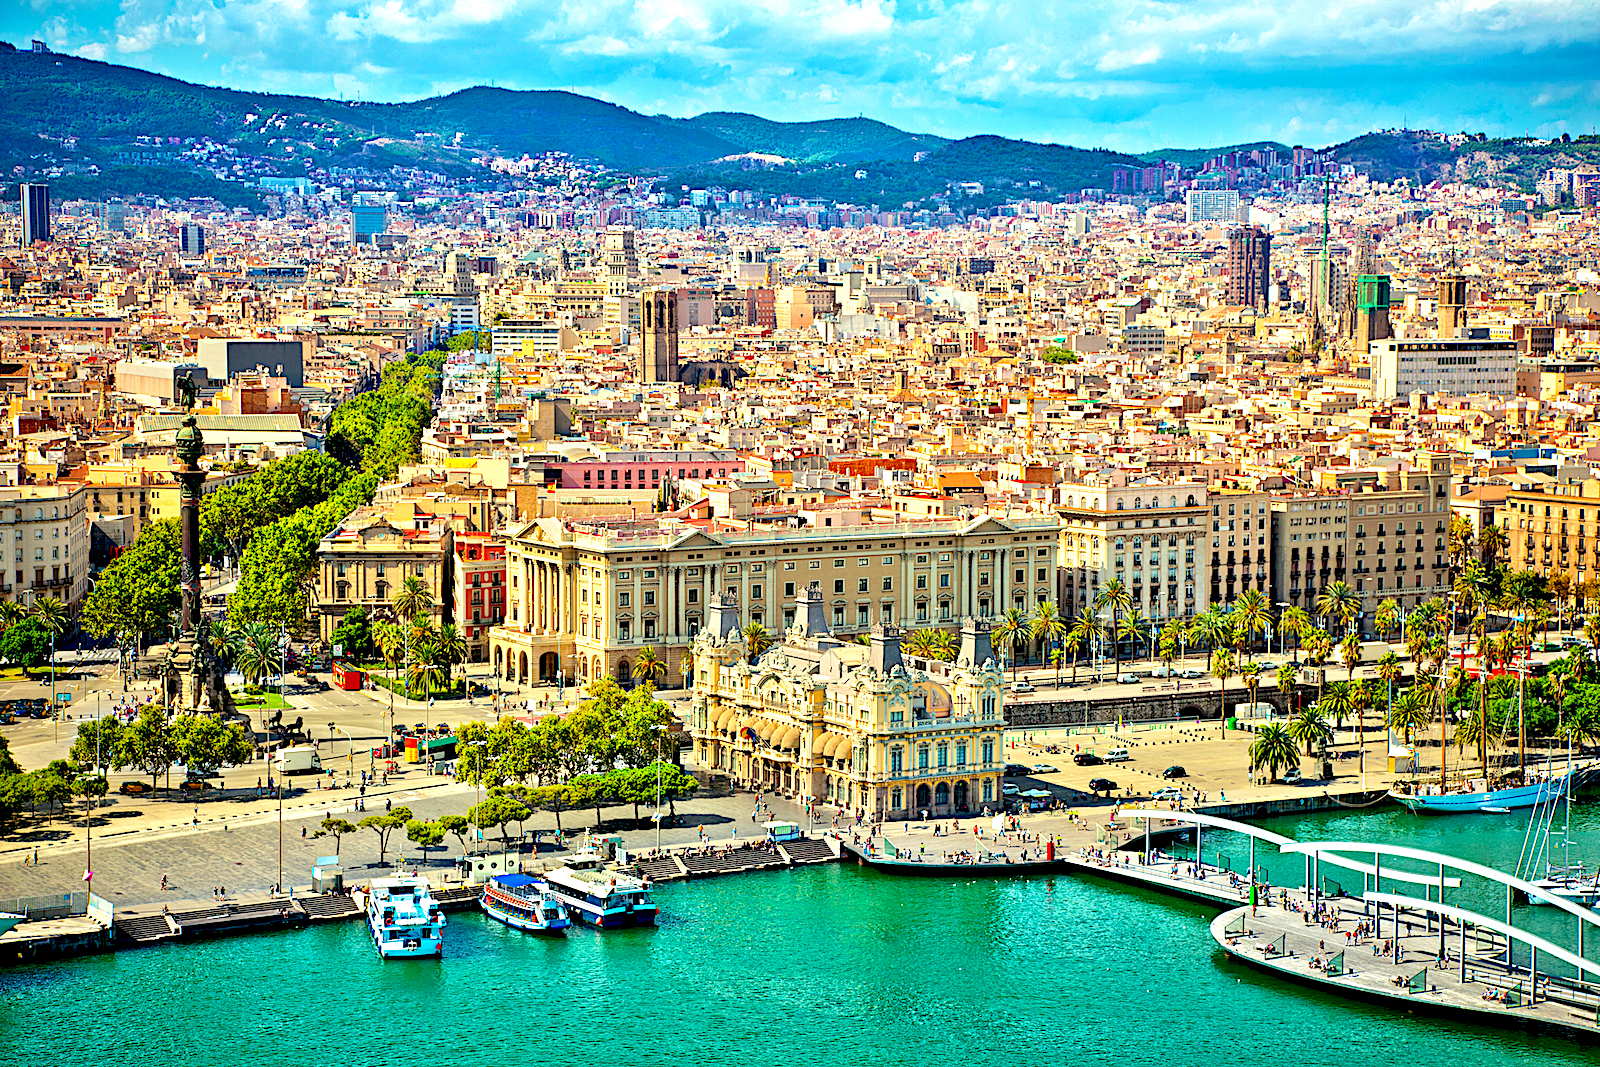 Barcelona enjoys a balmy climate on the Mediterranean